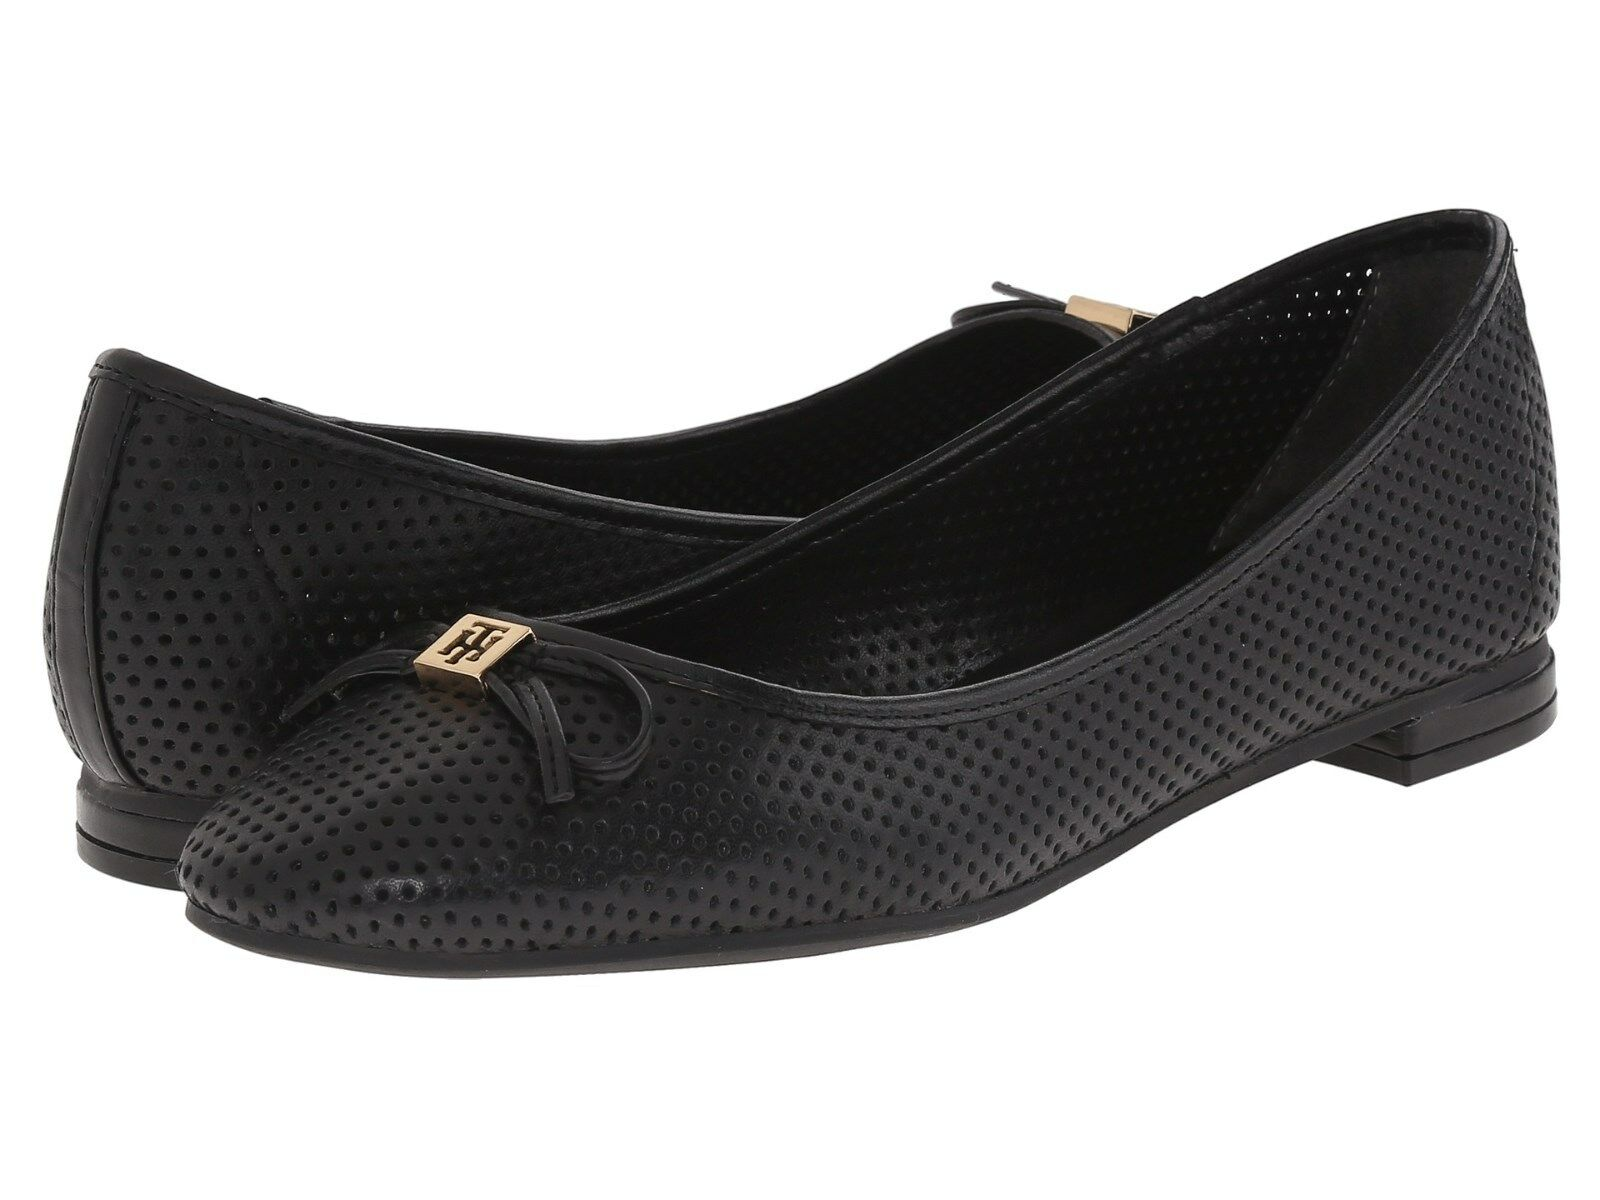 Tommy Hilfiger Mirella Black Perforated Ballet Flats Multisizes AS297